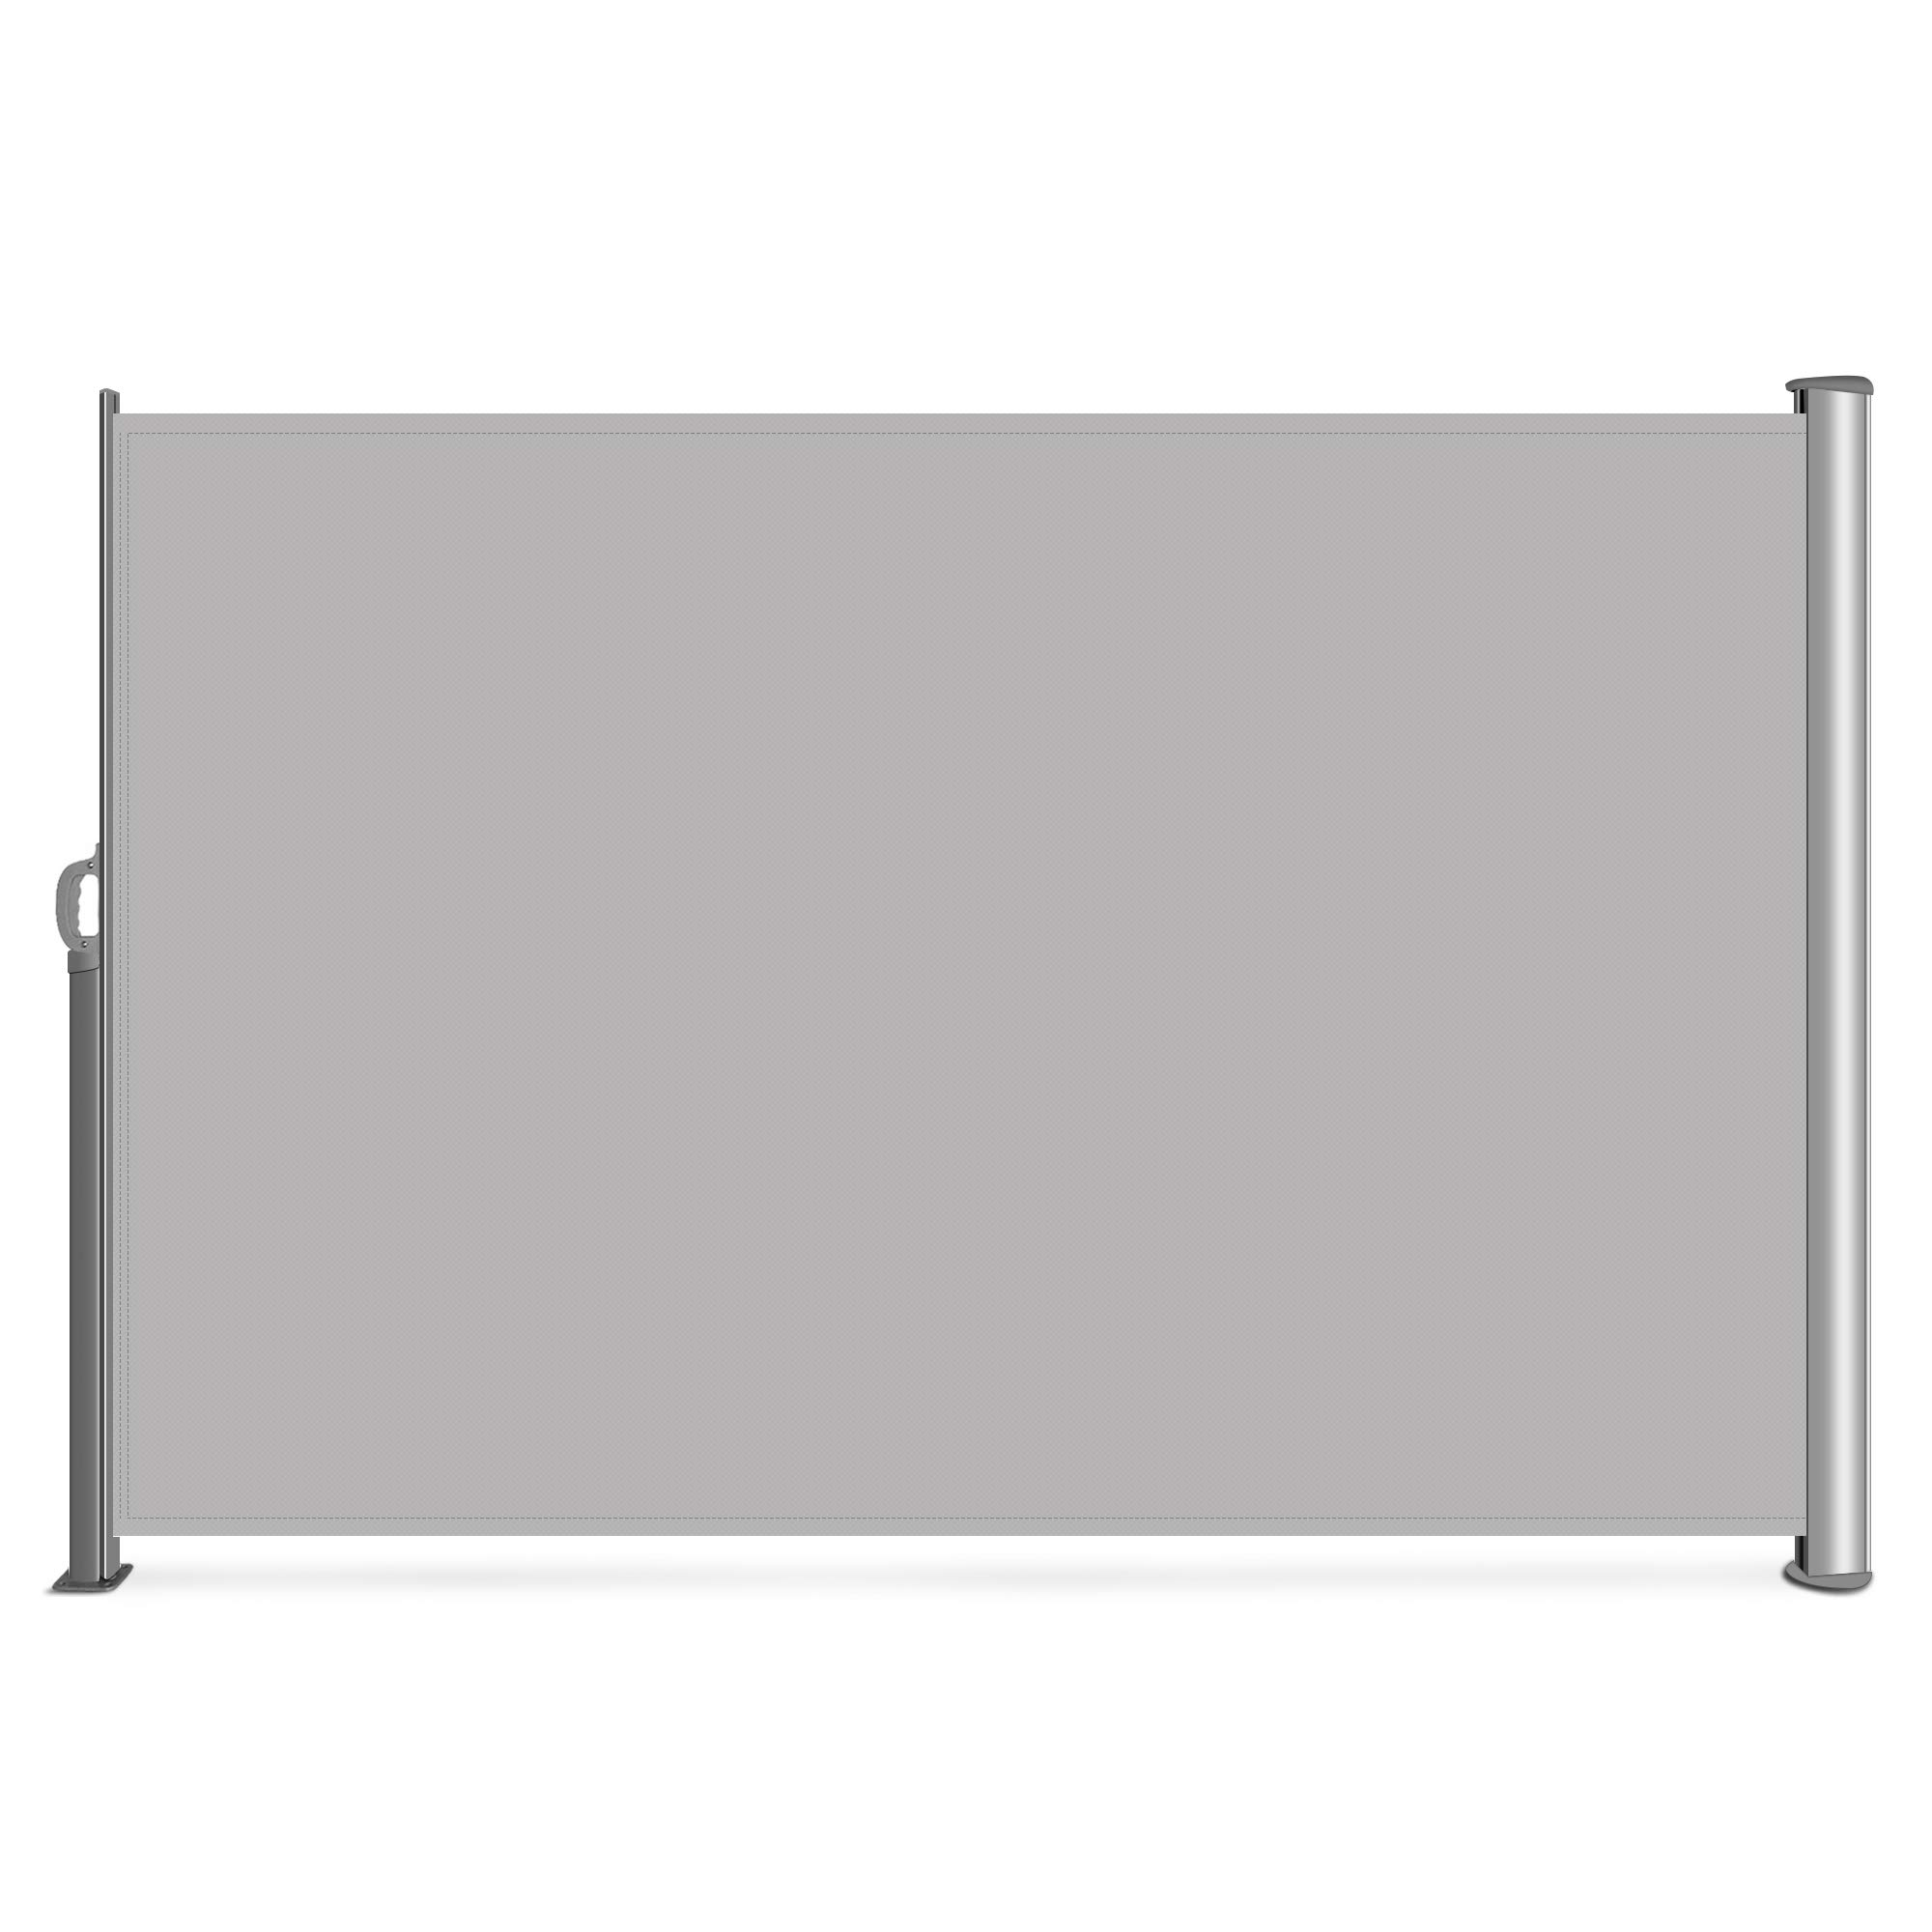 Belleze Folding Retractable Water UV Protection Side Awning Garden Wind Privacy Screen Divider 9.8 x 5.2FT, Grey